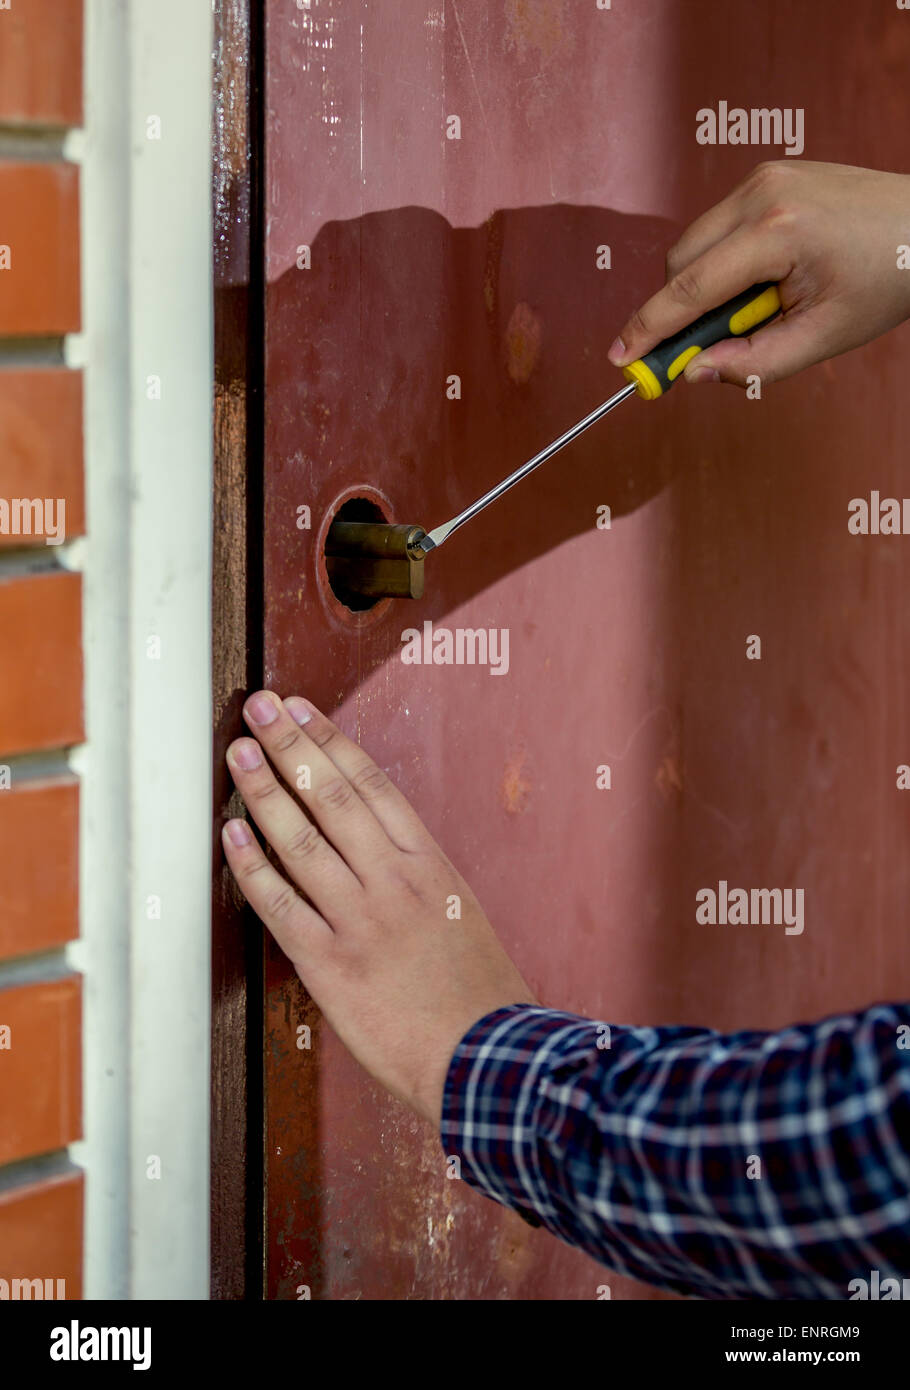 Closeup Shot Of Carpenter Trying To Open Door Lock Using Screwdriver